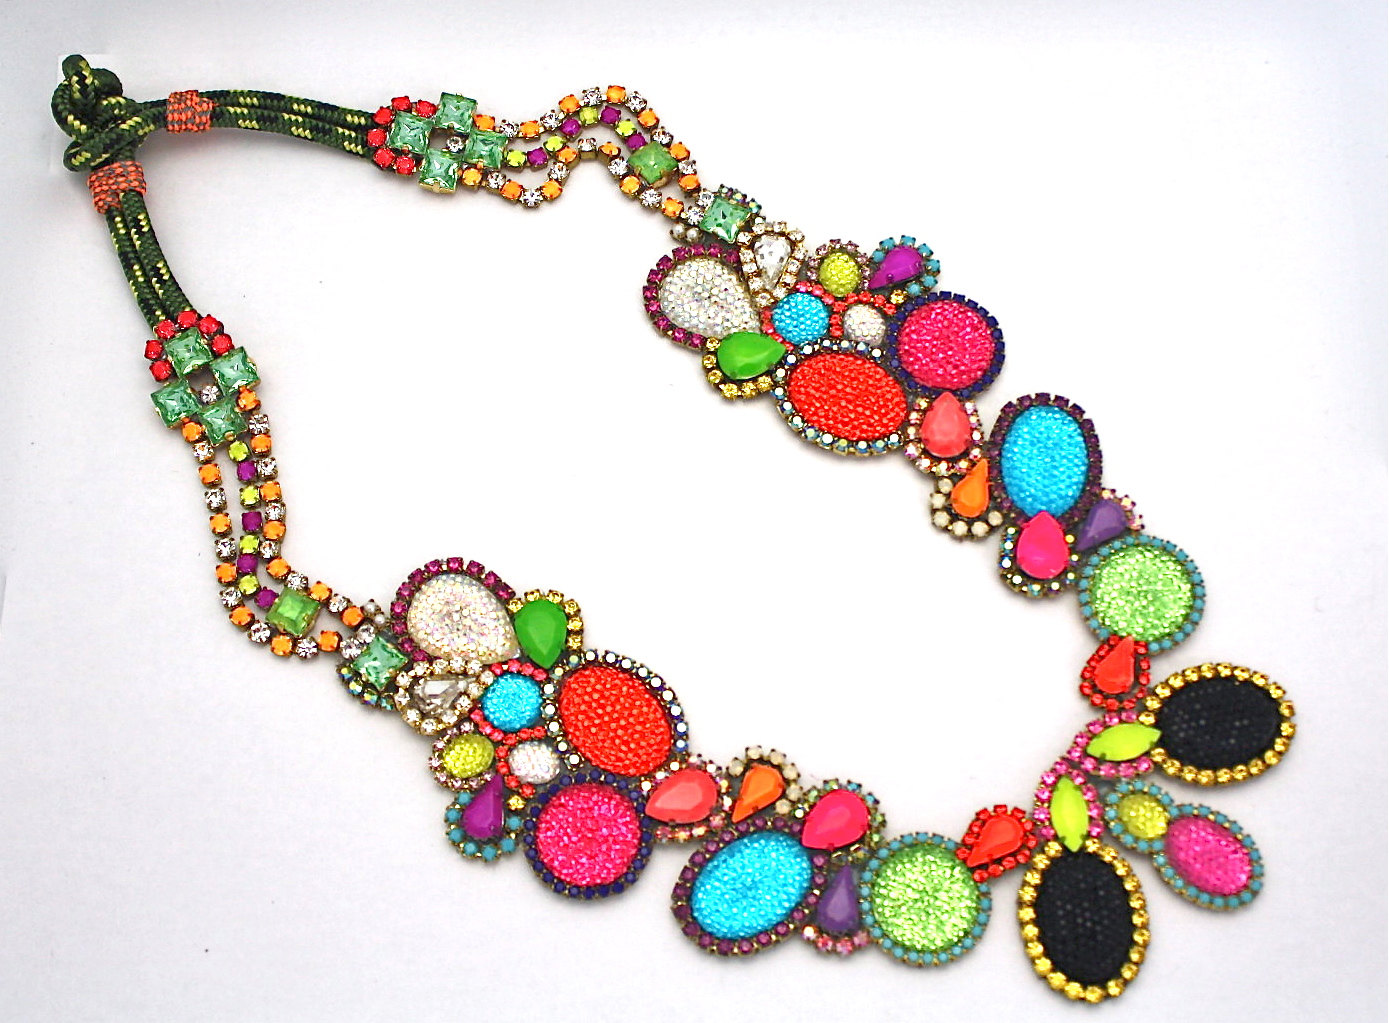 Bridesmaid-gift-ideas-bright-statement-necklace-1.original